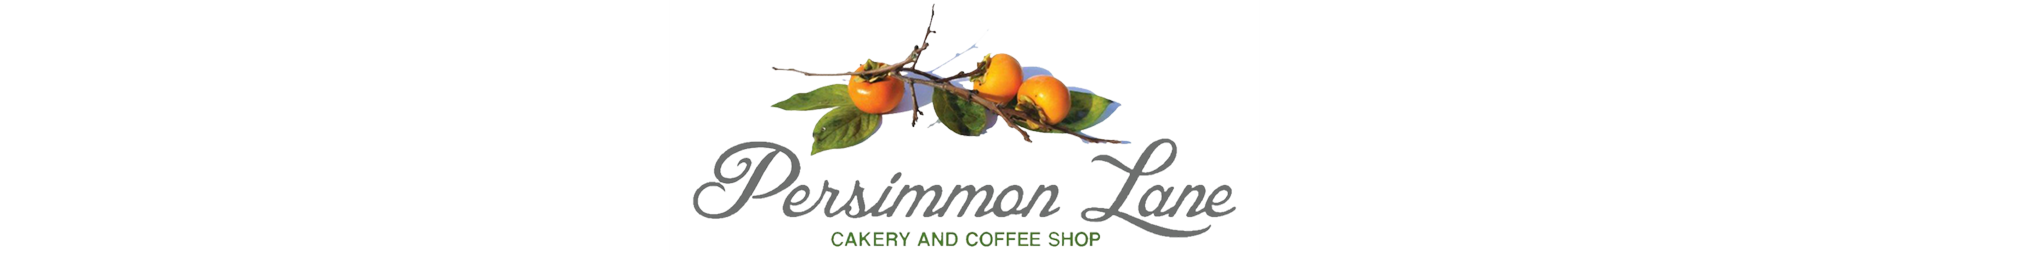 Persimmon Lane Cakery and Coffee Shop - Header Image